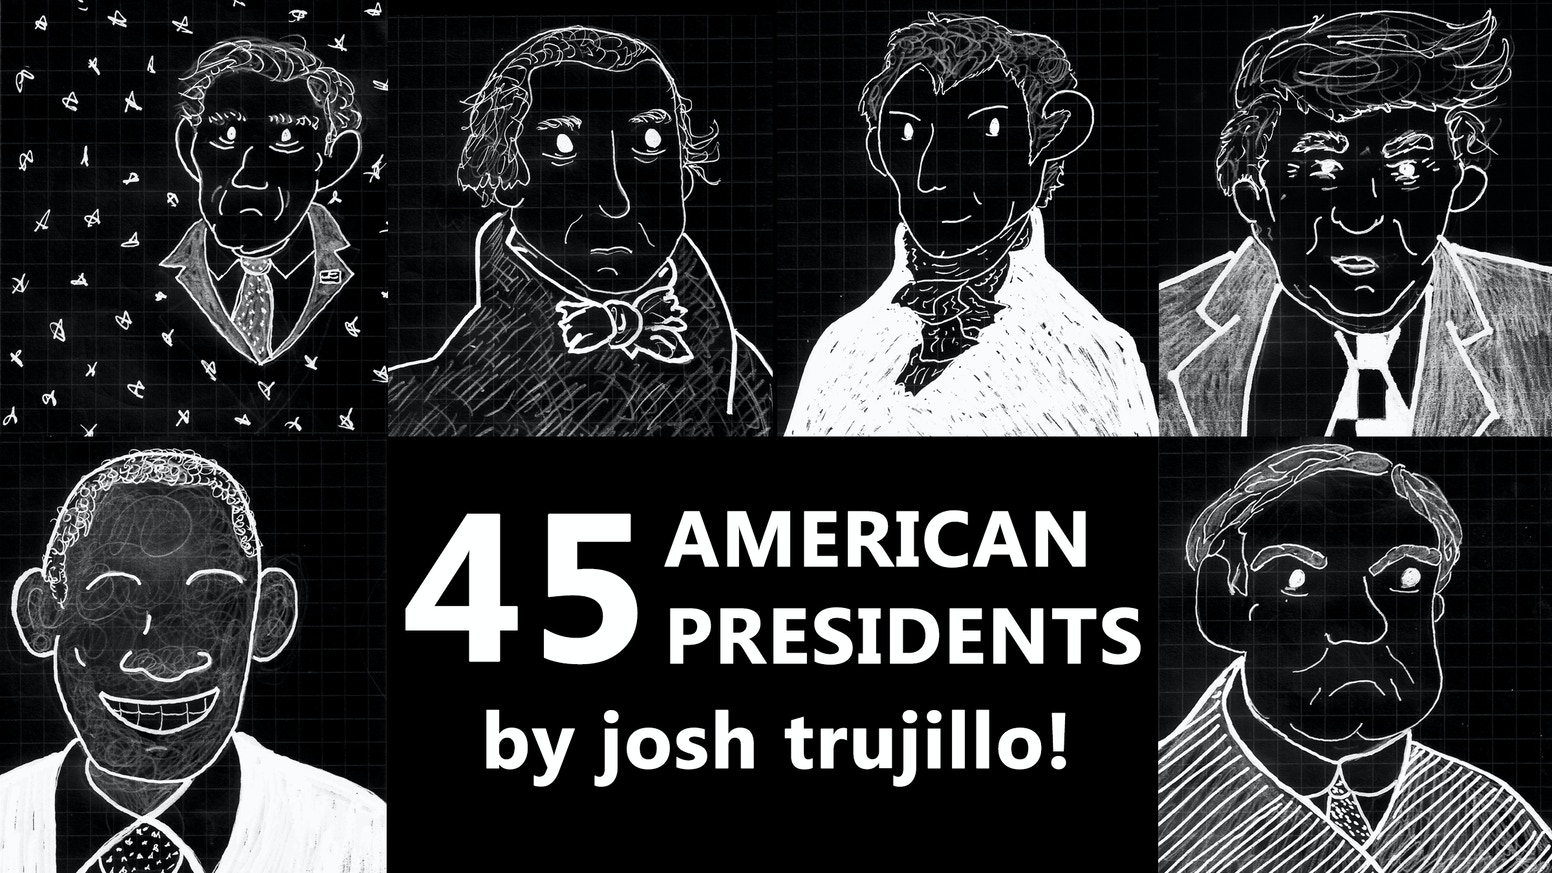 A limited edition sketchbook containing illustrations of all 45 American Presidents. Yes, all of them.